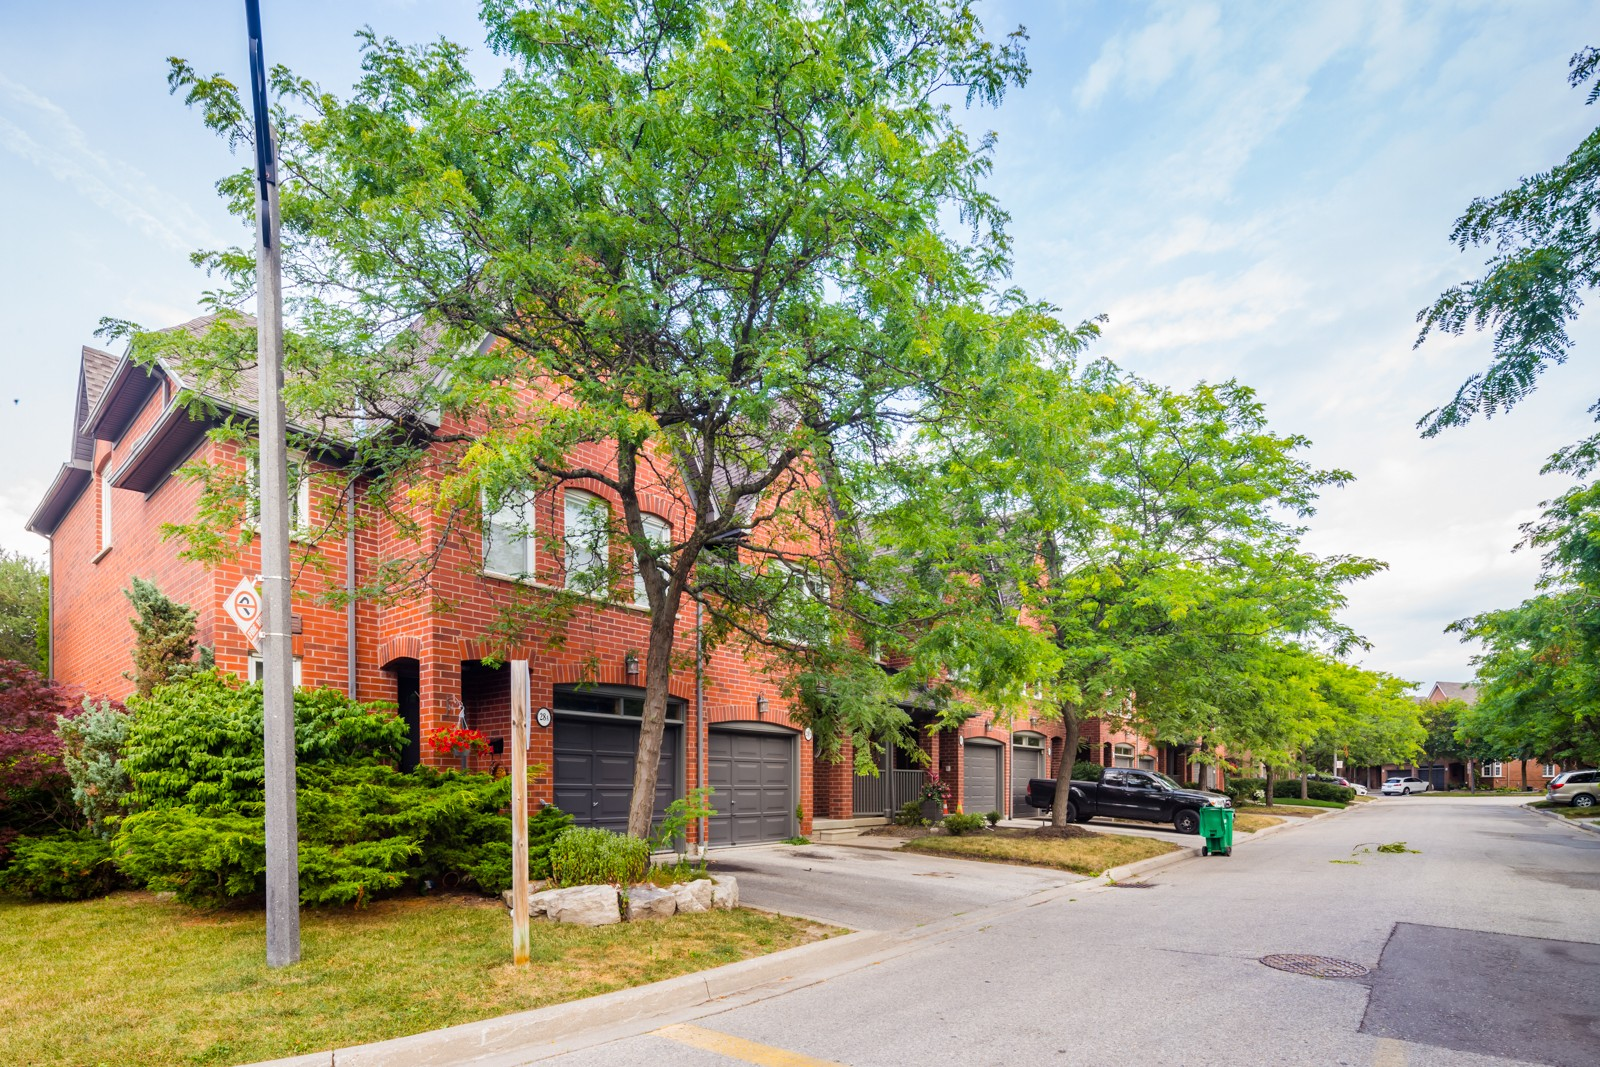 1064 Queen Street West Townhouses at 1064 Queen St W, Mississauga 0